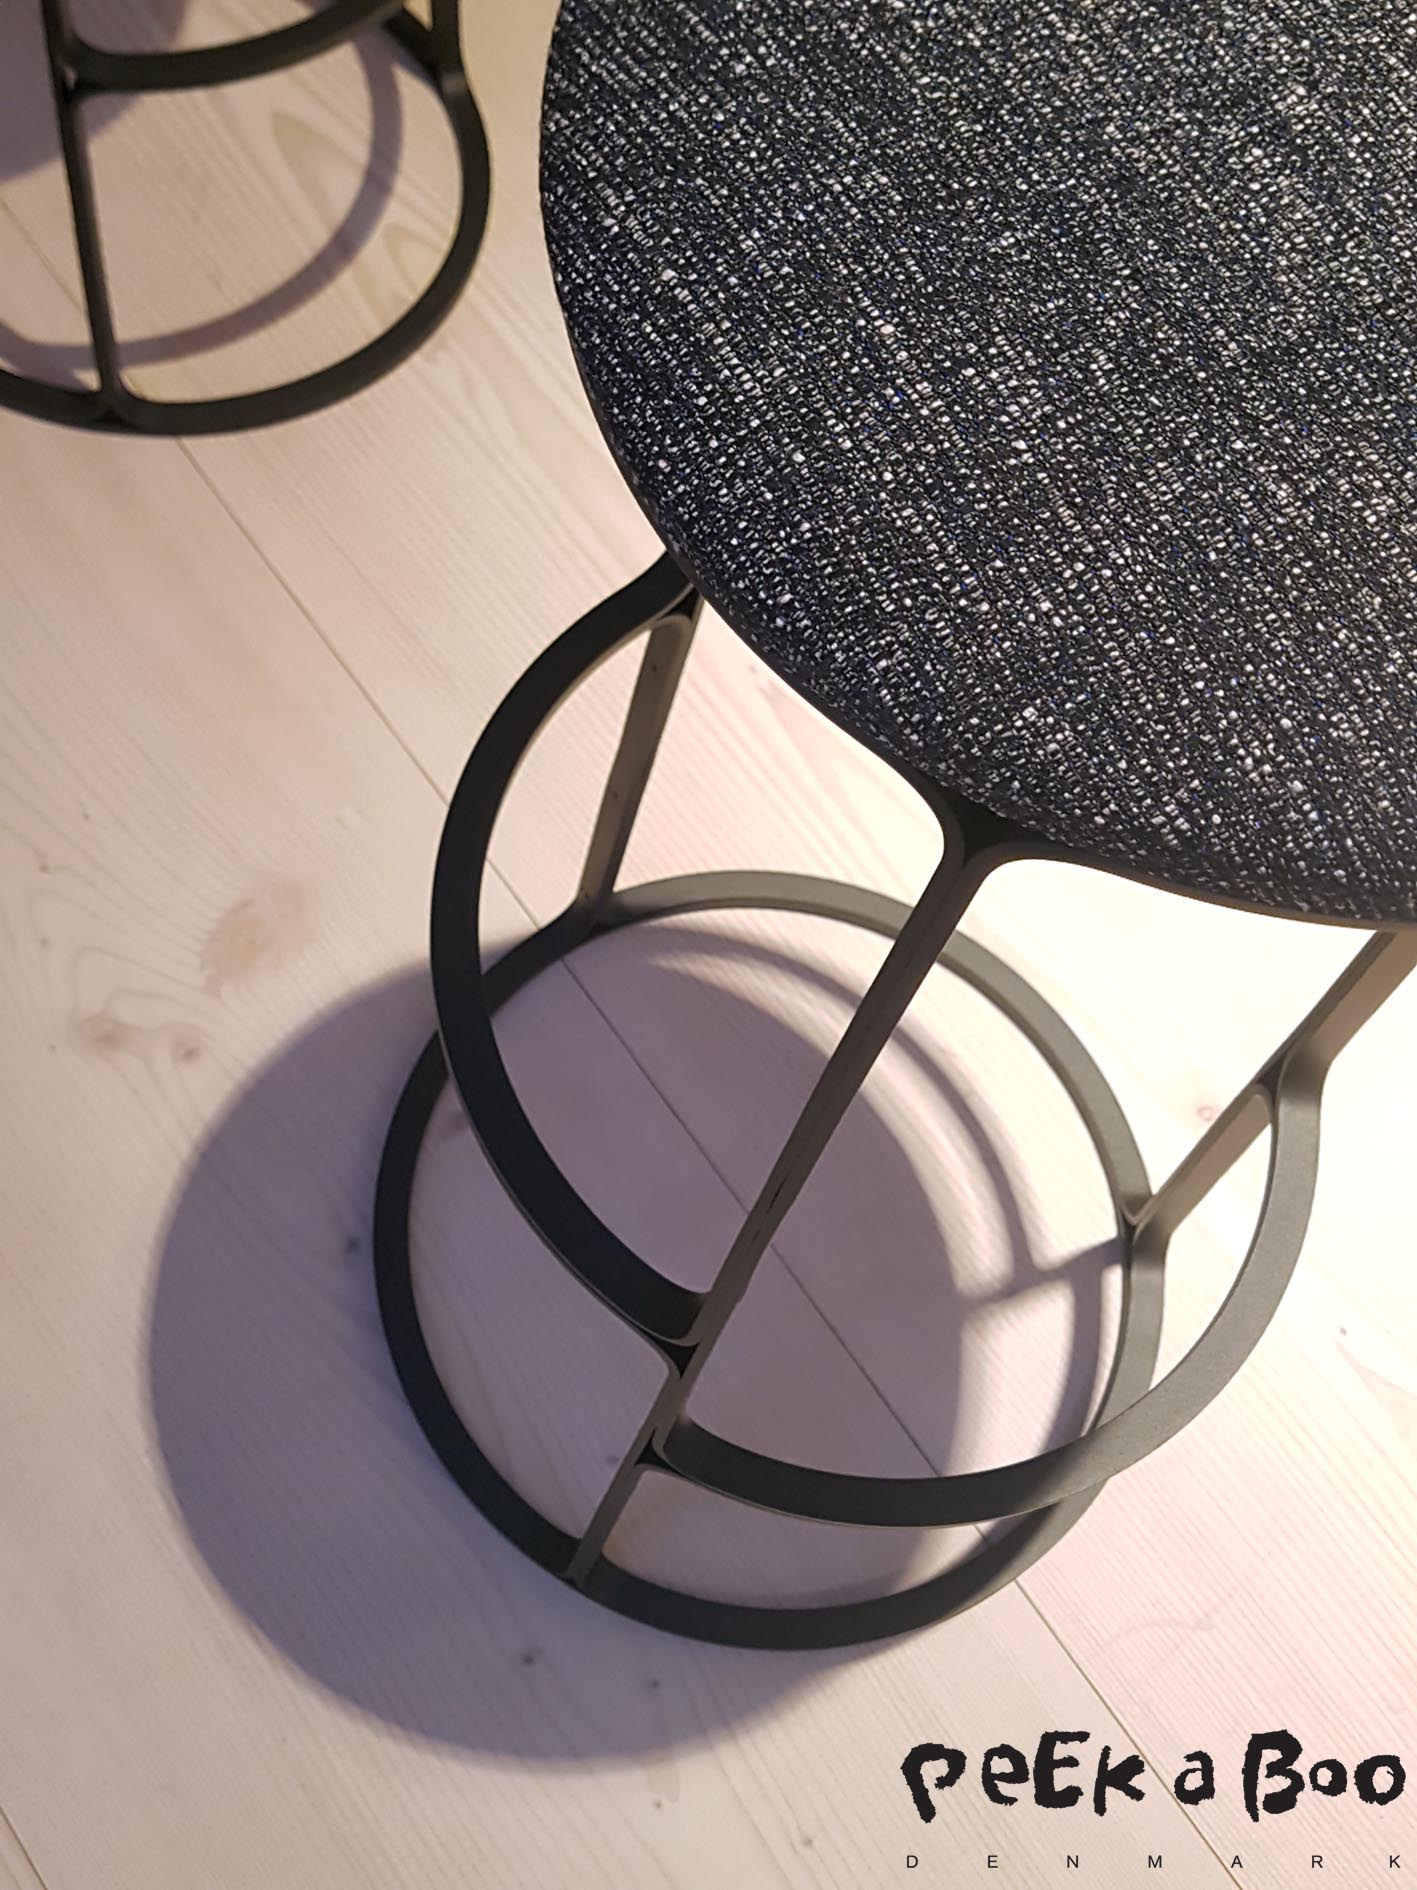 barstool designed by Barbry studio.